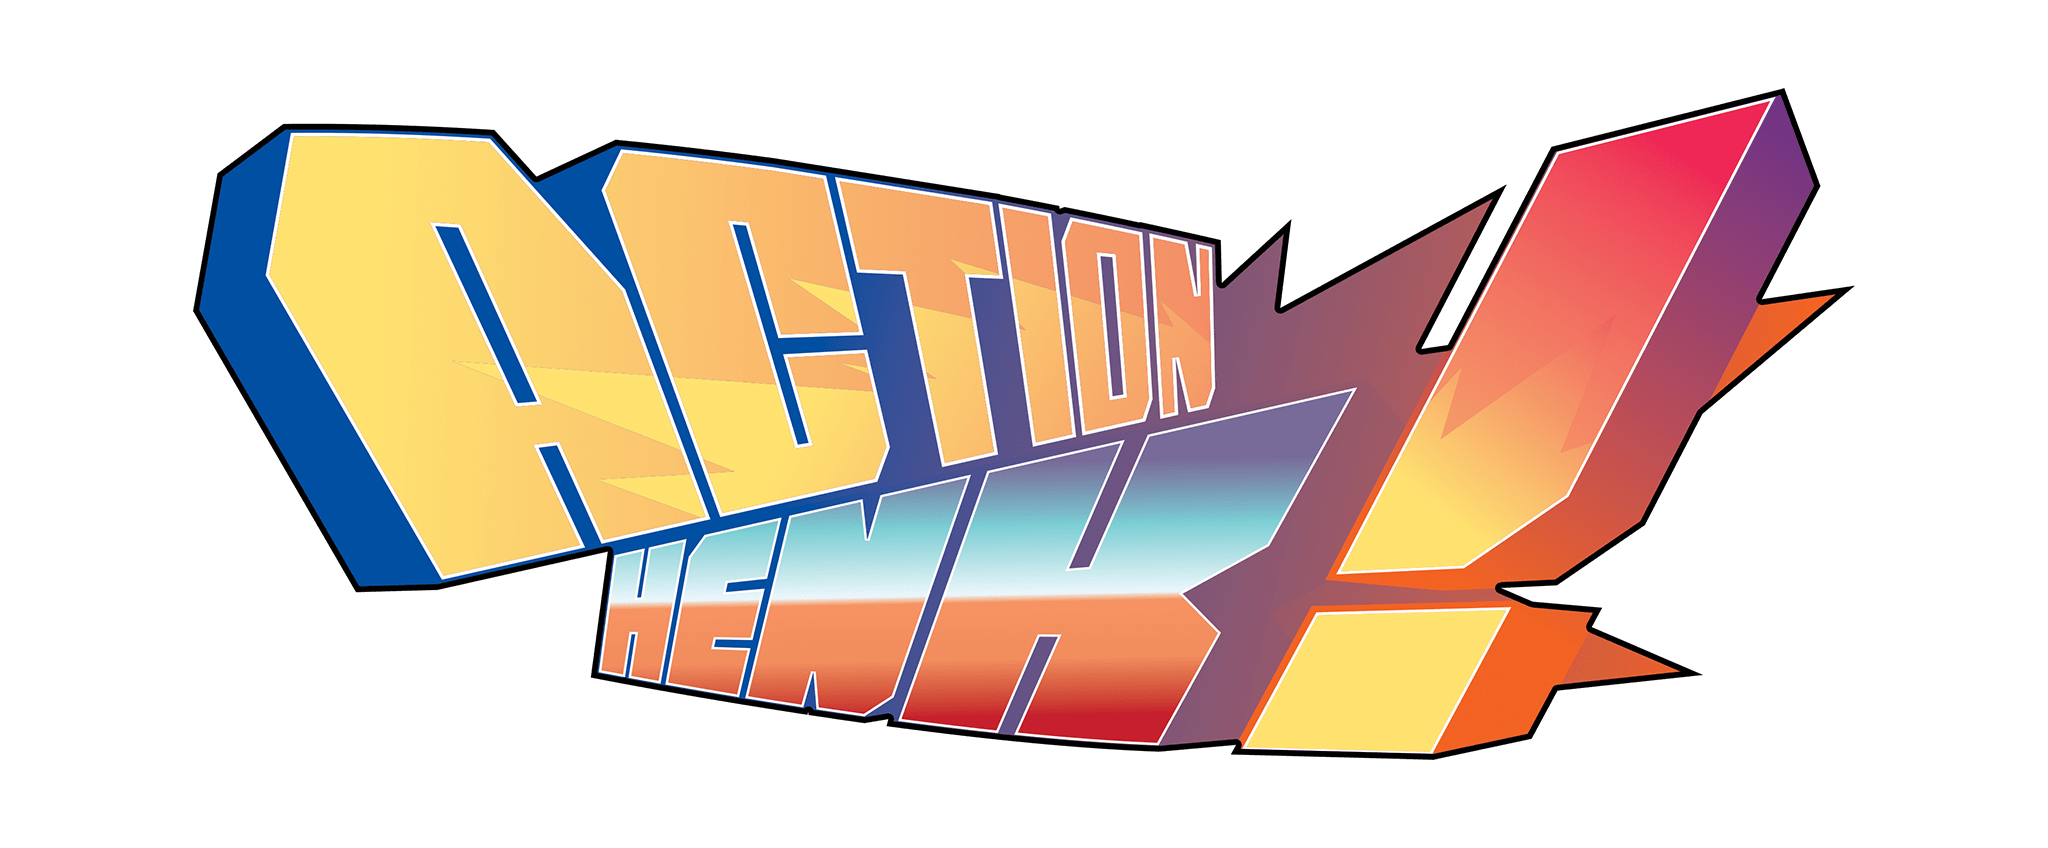 action henk logo